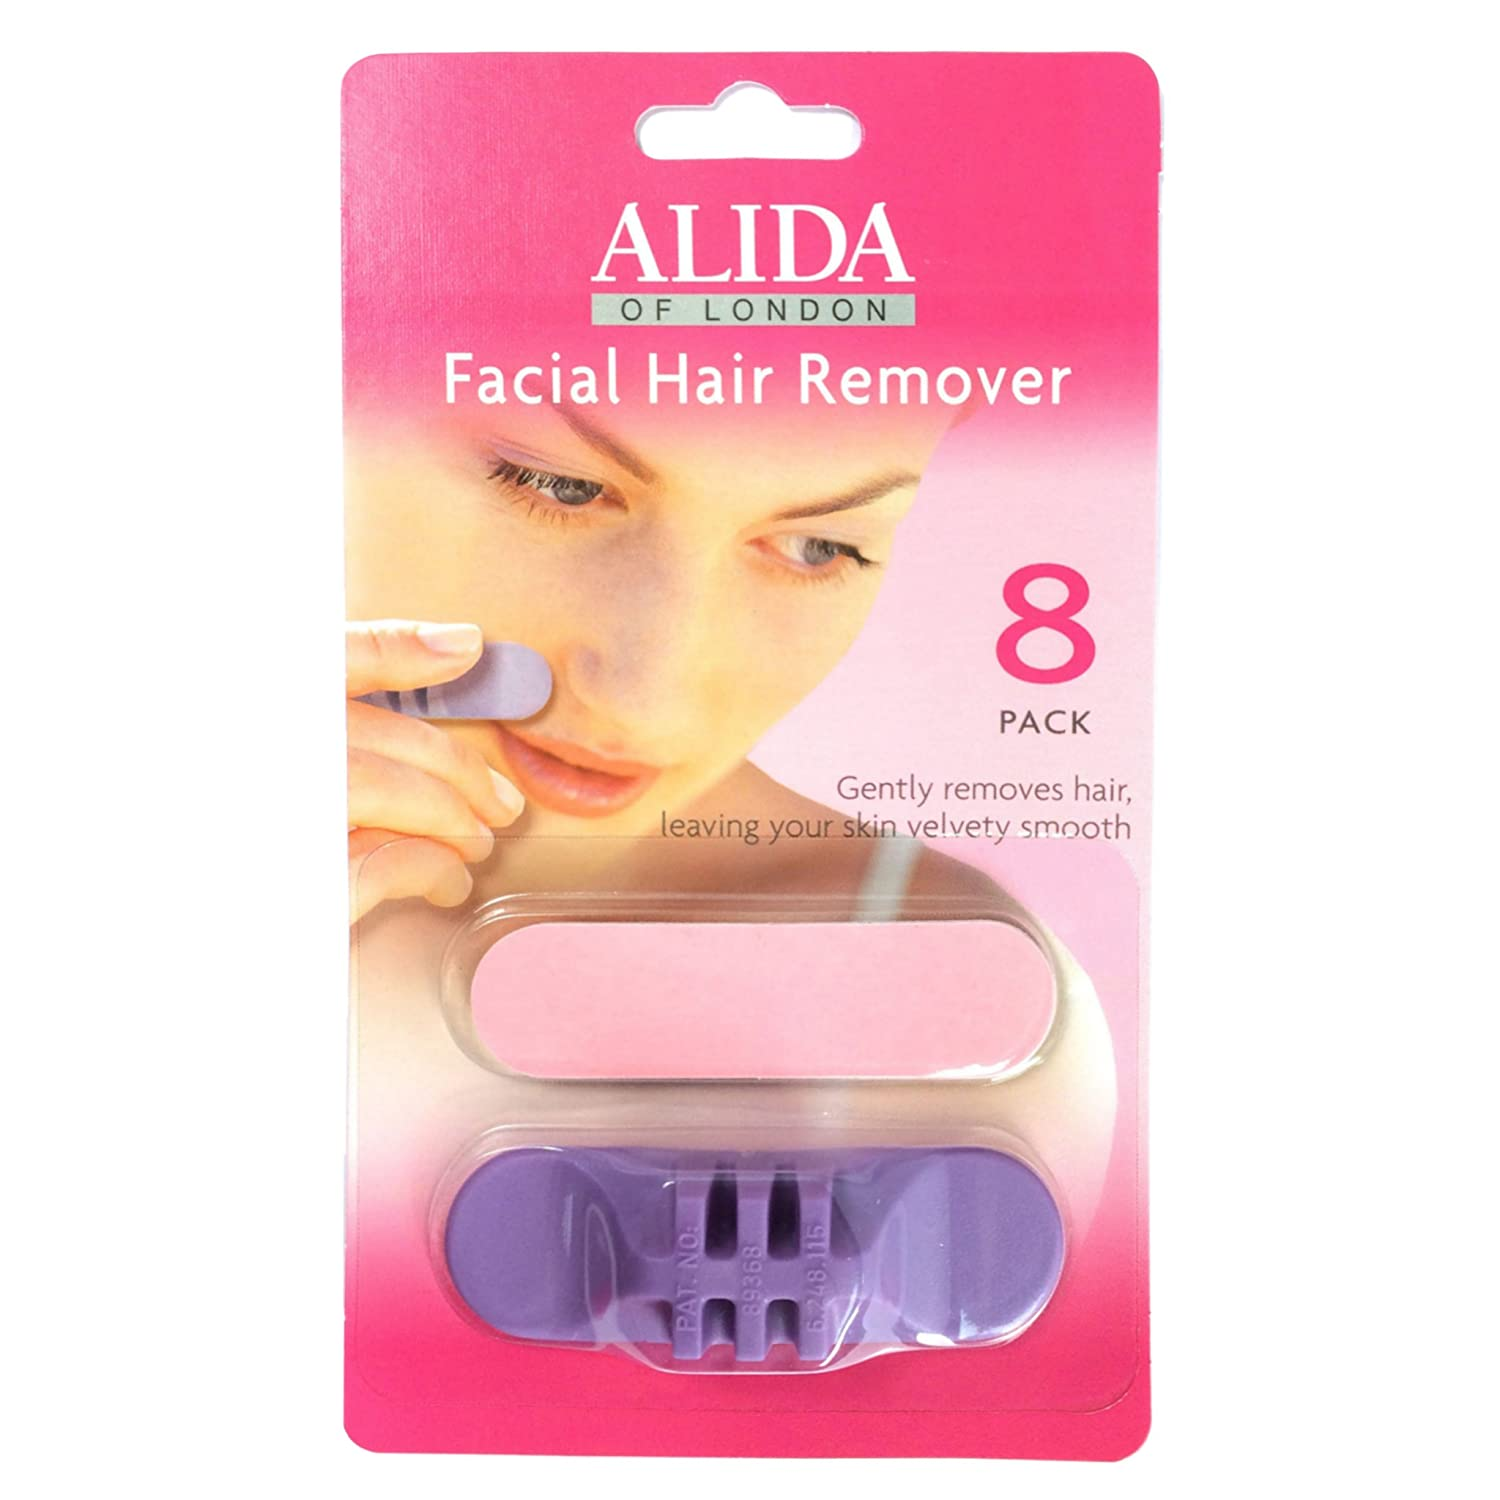 Facial Hair Remover pads by Alida - single pack 20201100